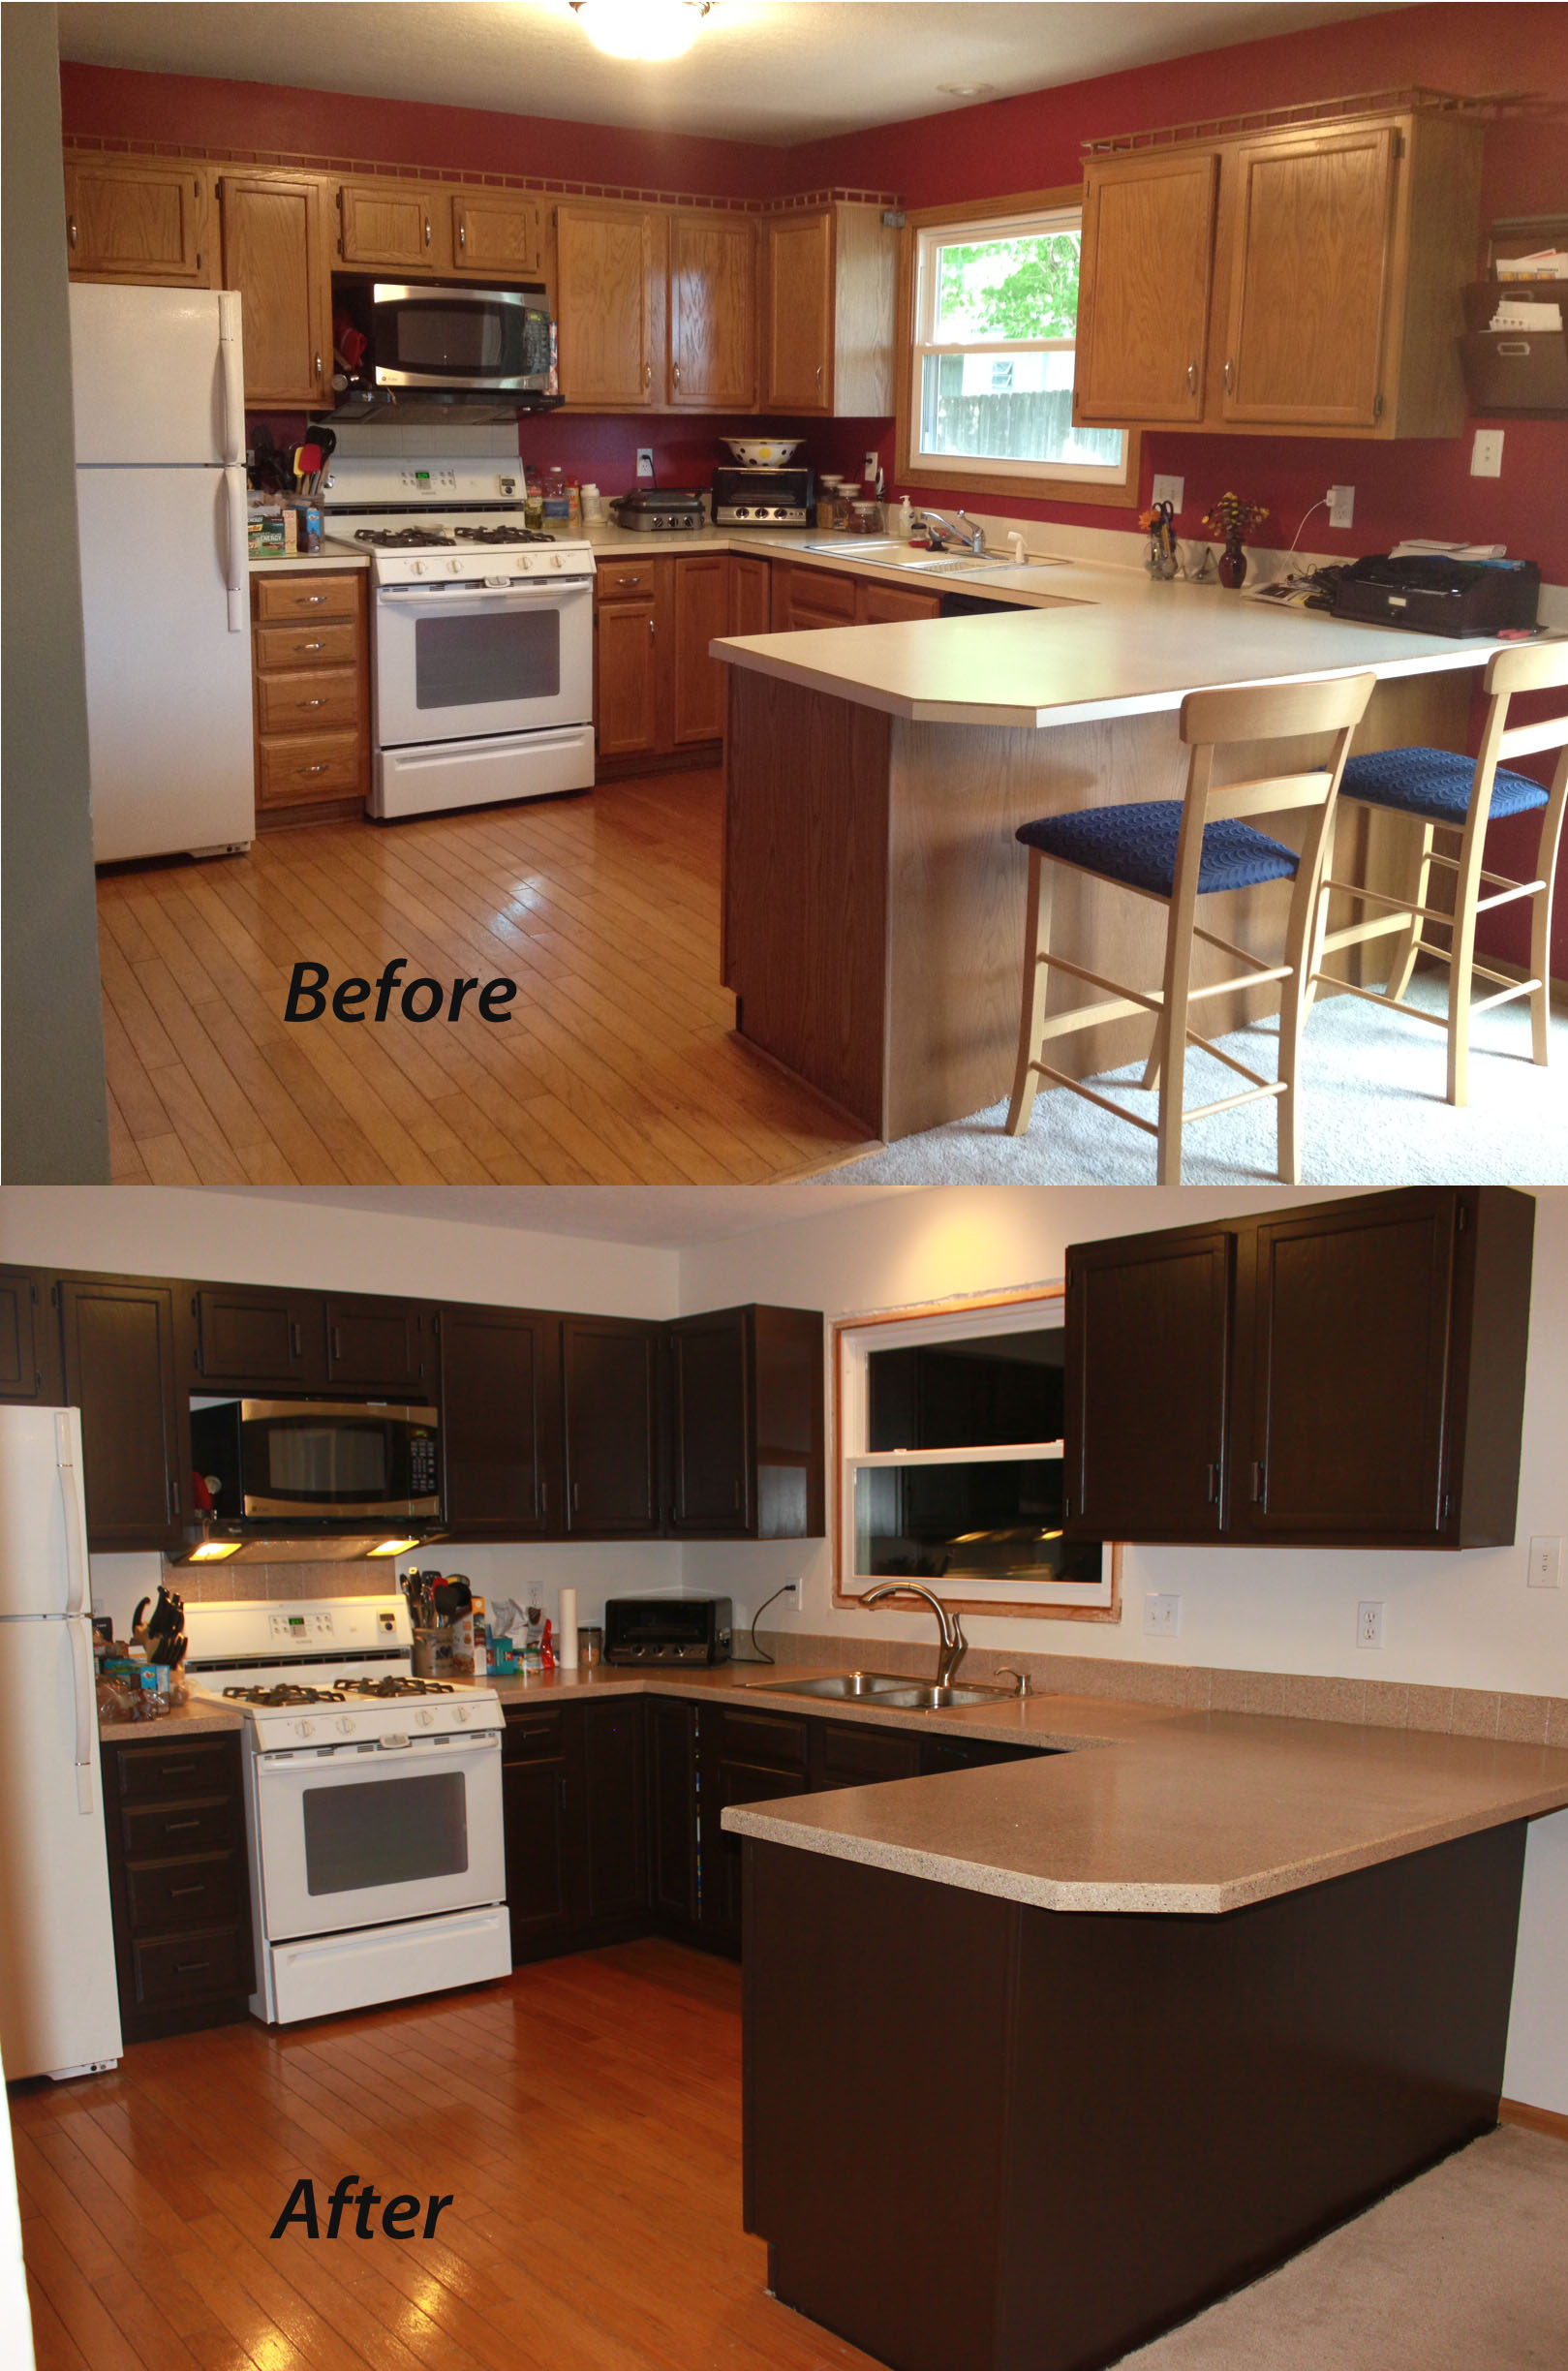 Painted Bathroom Cabinets Before And After painting kitchen cabinets - sometimes homemade